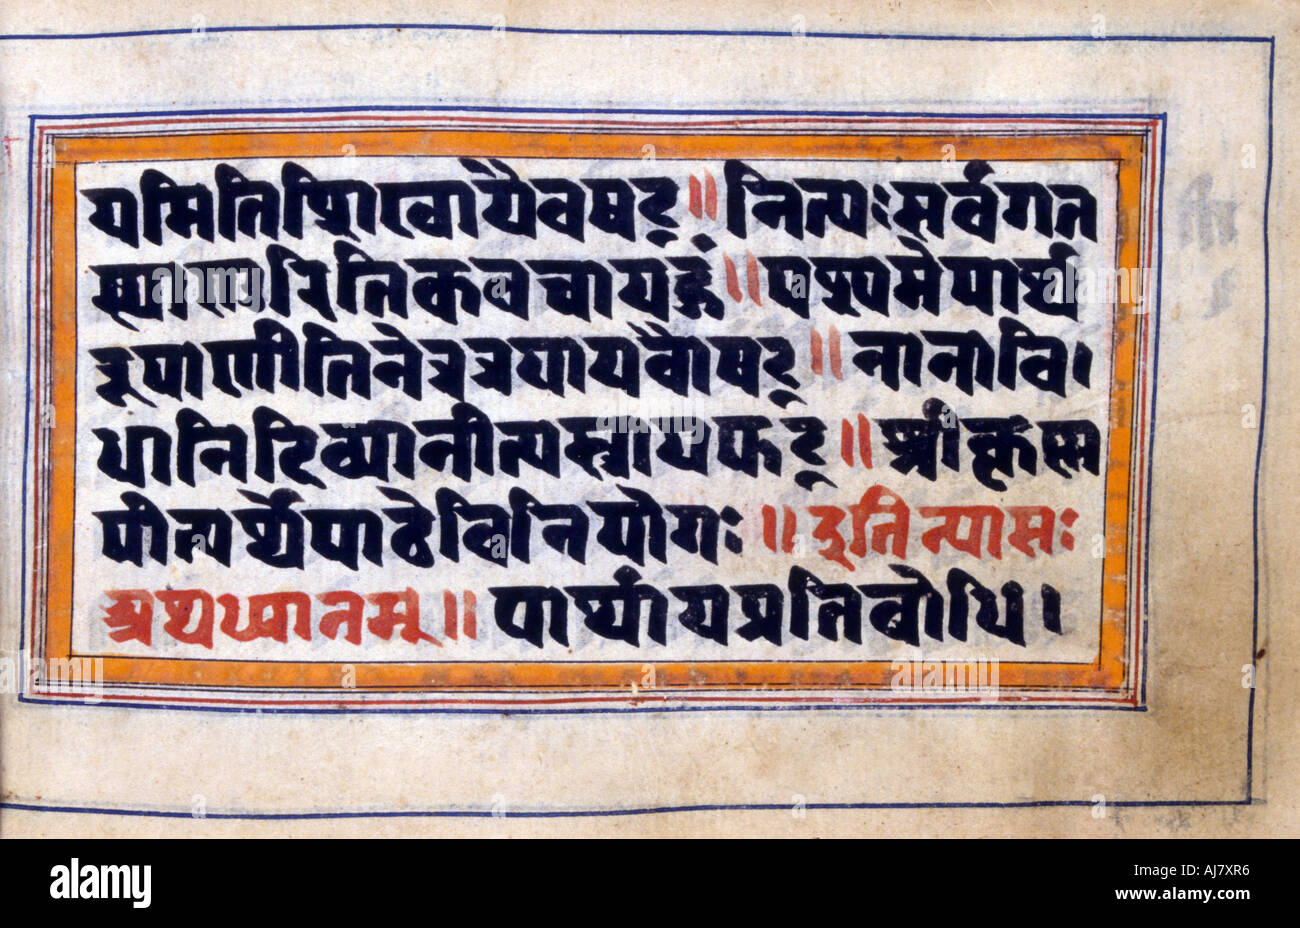 Excerpt from the Bhagavad Gita The Song of the Blessed North Indian manuscript 18th century  - Stock Image